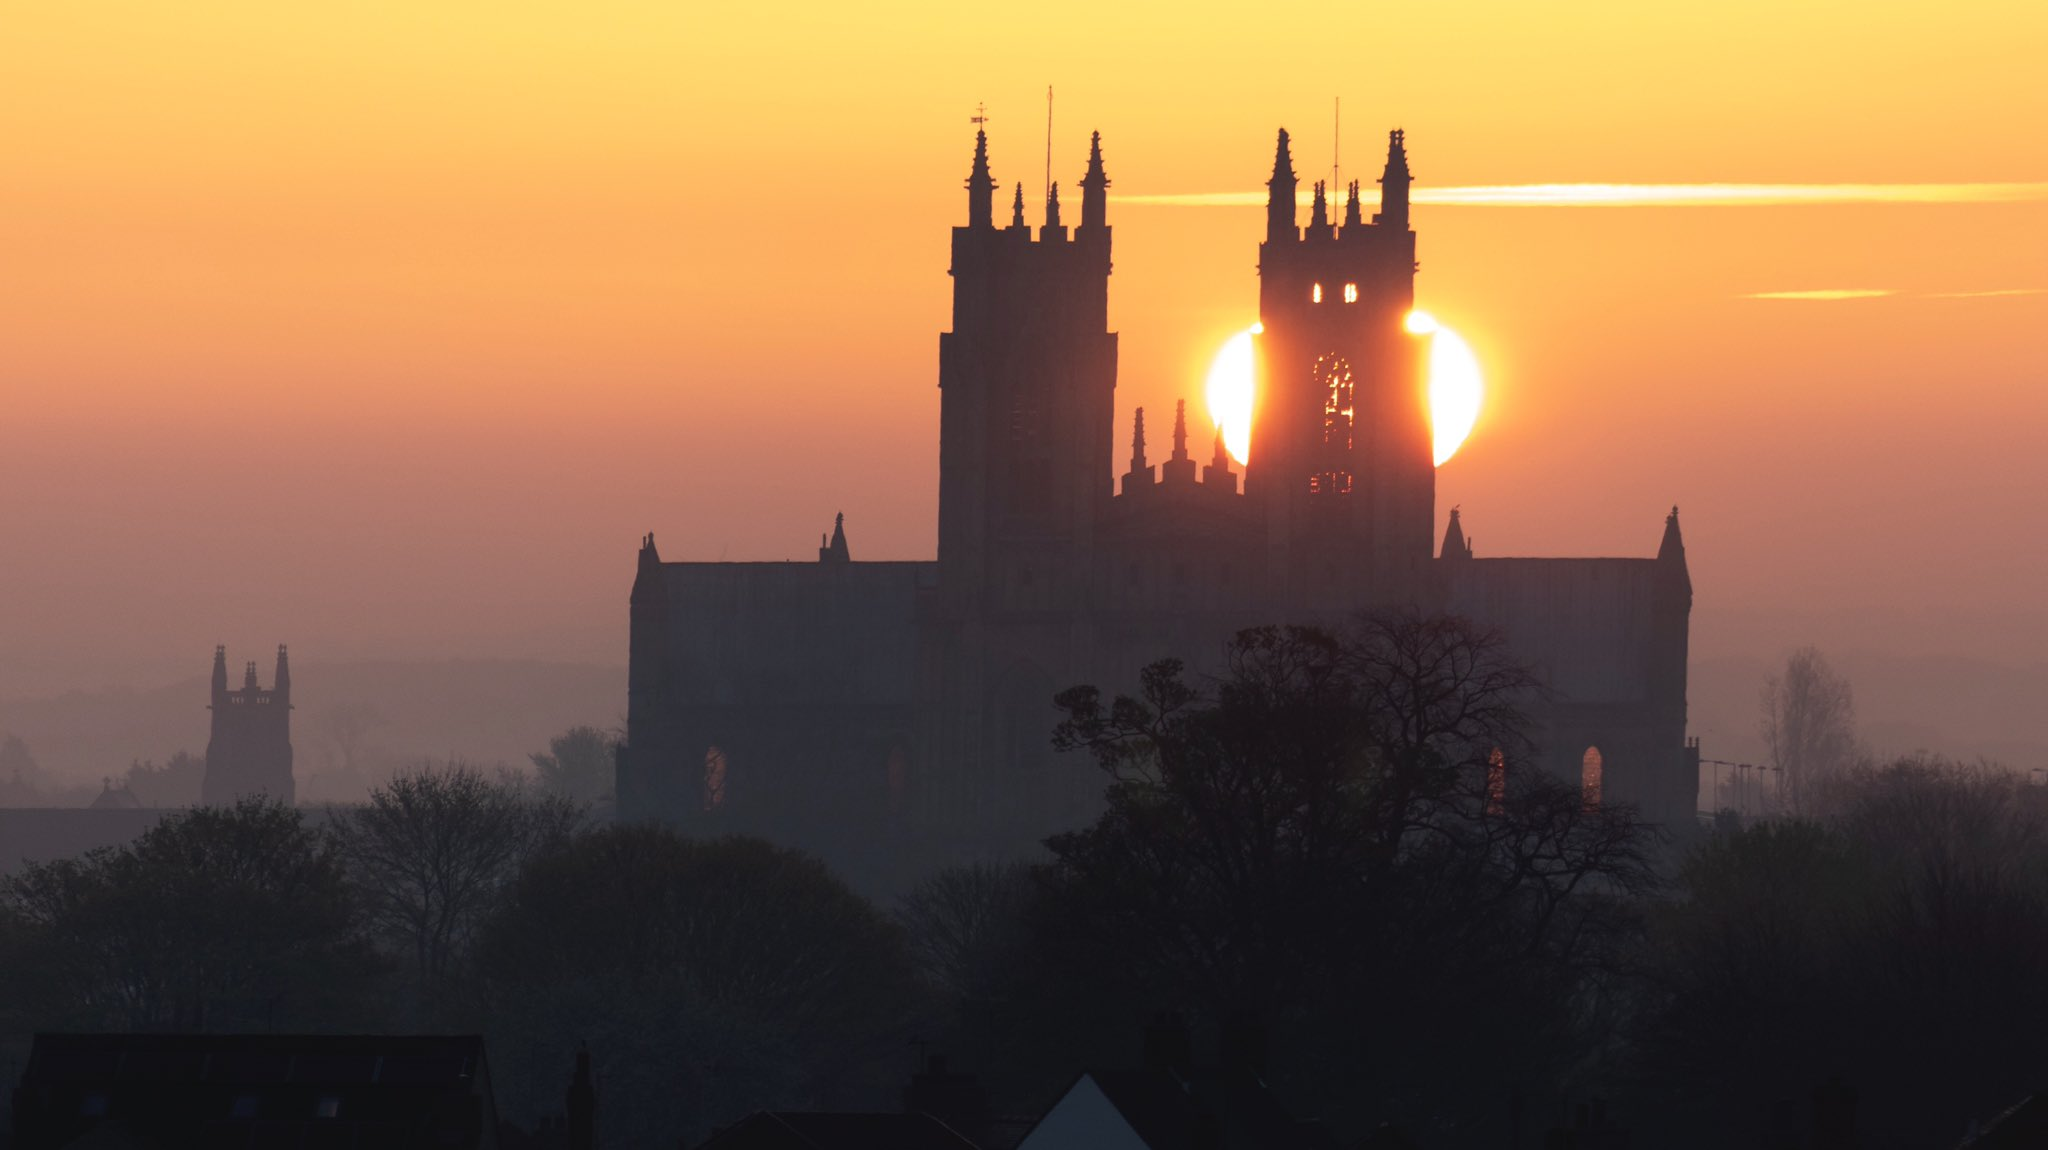 Stoked to be contributing some pics of this beauty to @JonathanFoyle 's latest book project on Beverley Minster https://t.co/UIr0jGrDA4